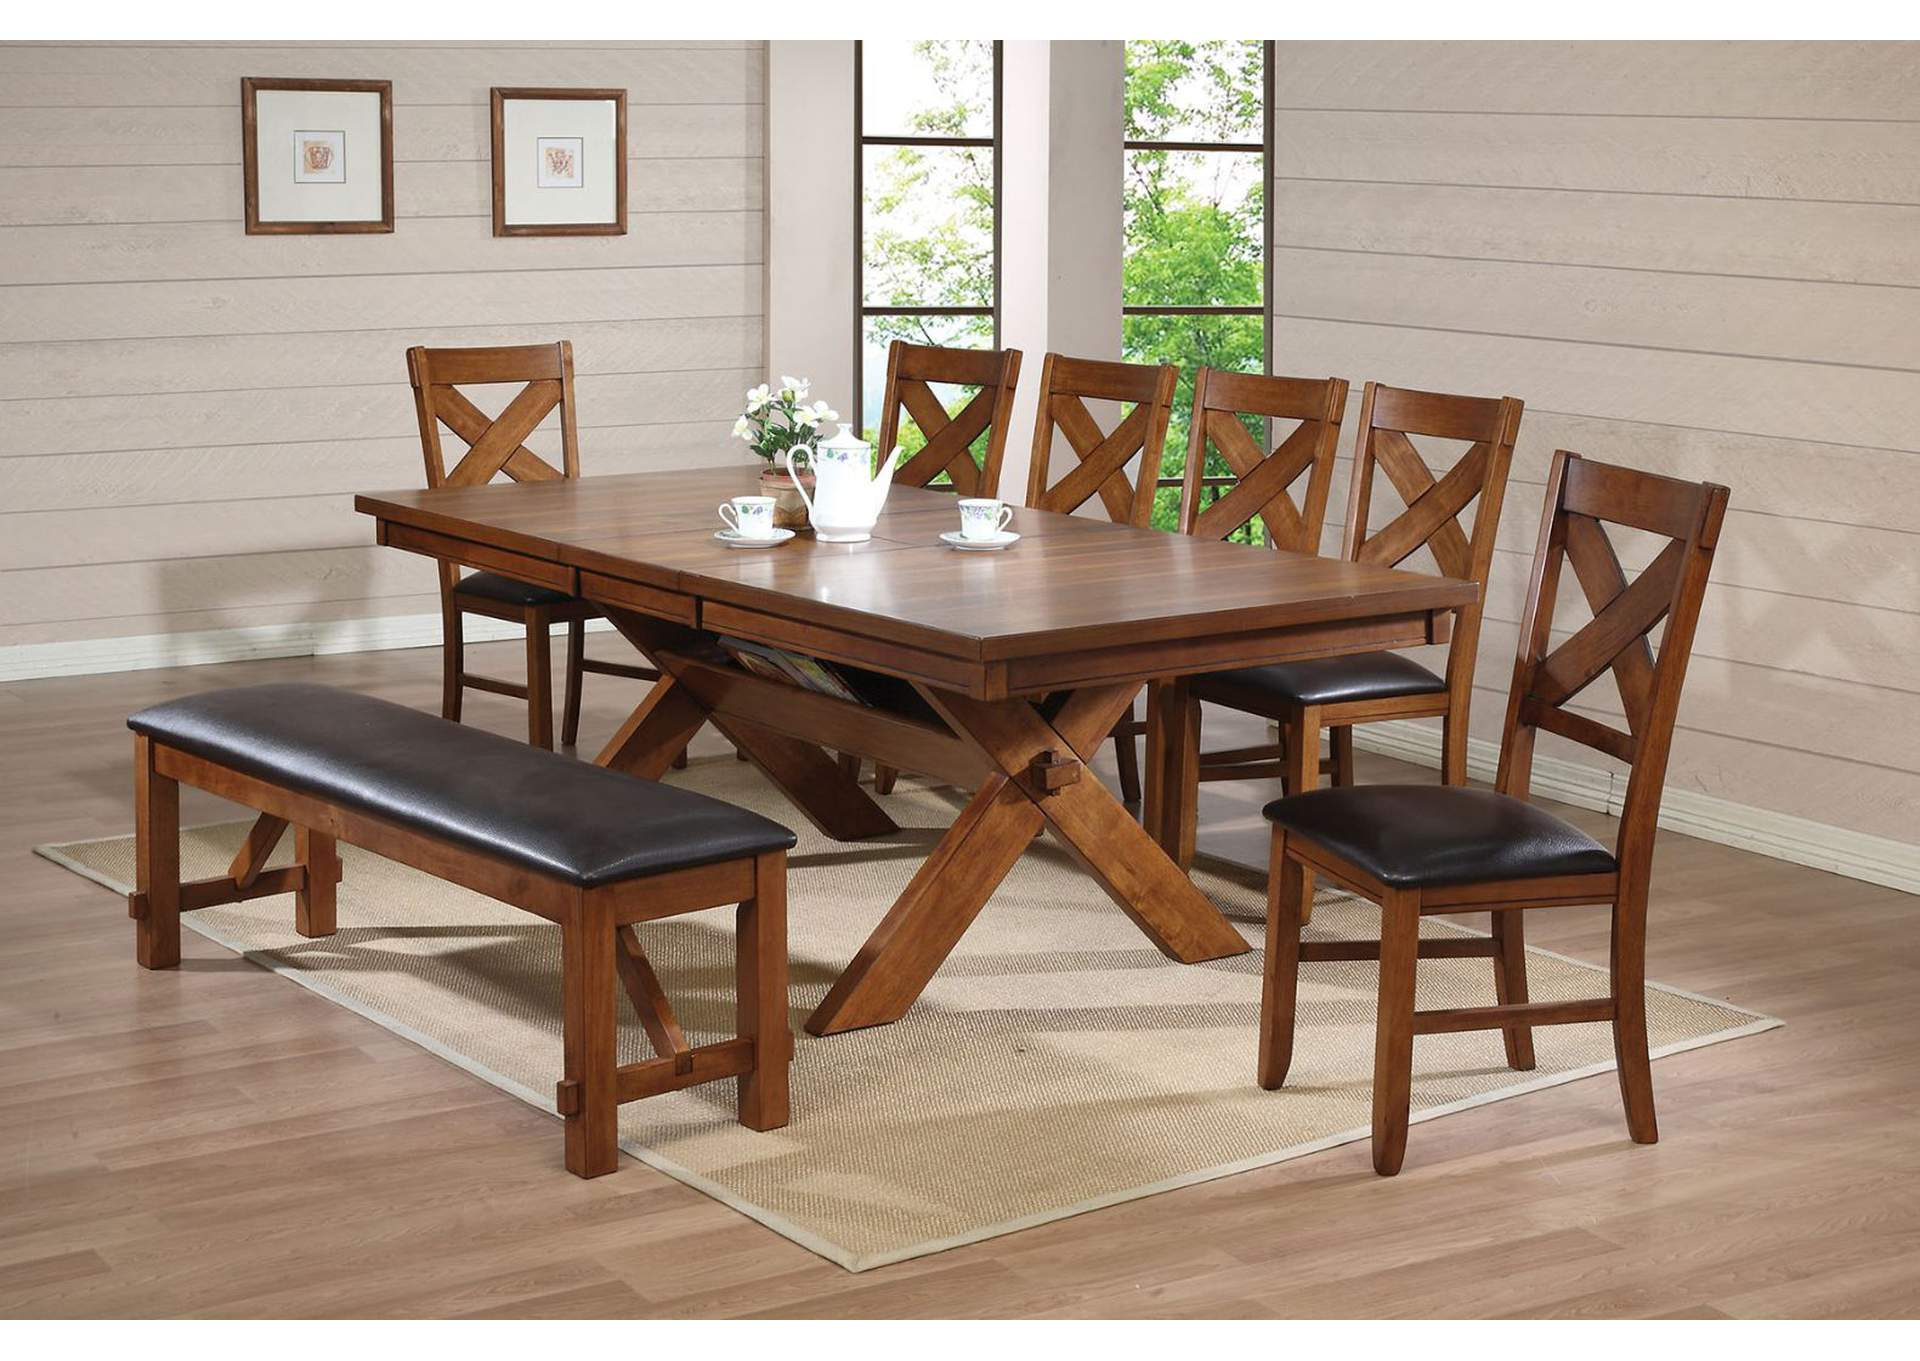 Sensational Salinas Furniture Apollo Walnut Dining Table Caraccident5 Cool Chair Designs And Ideas Caraccident5Info